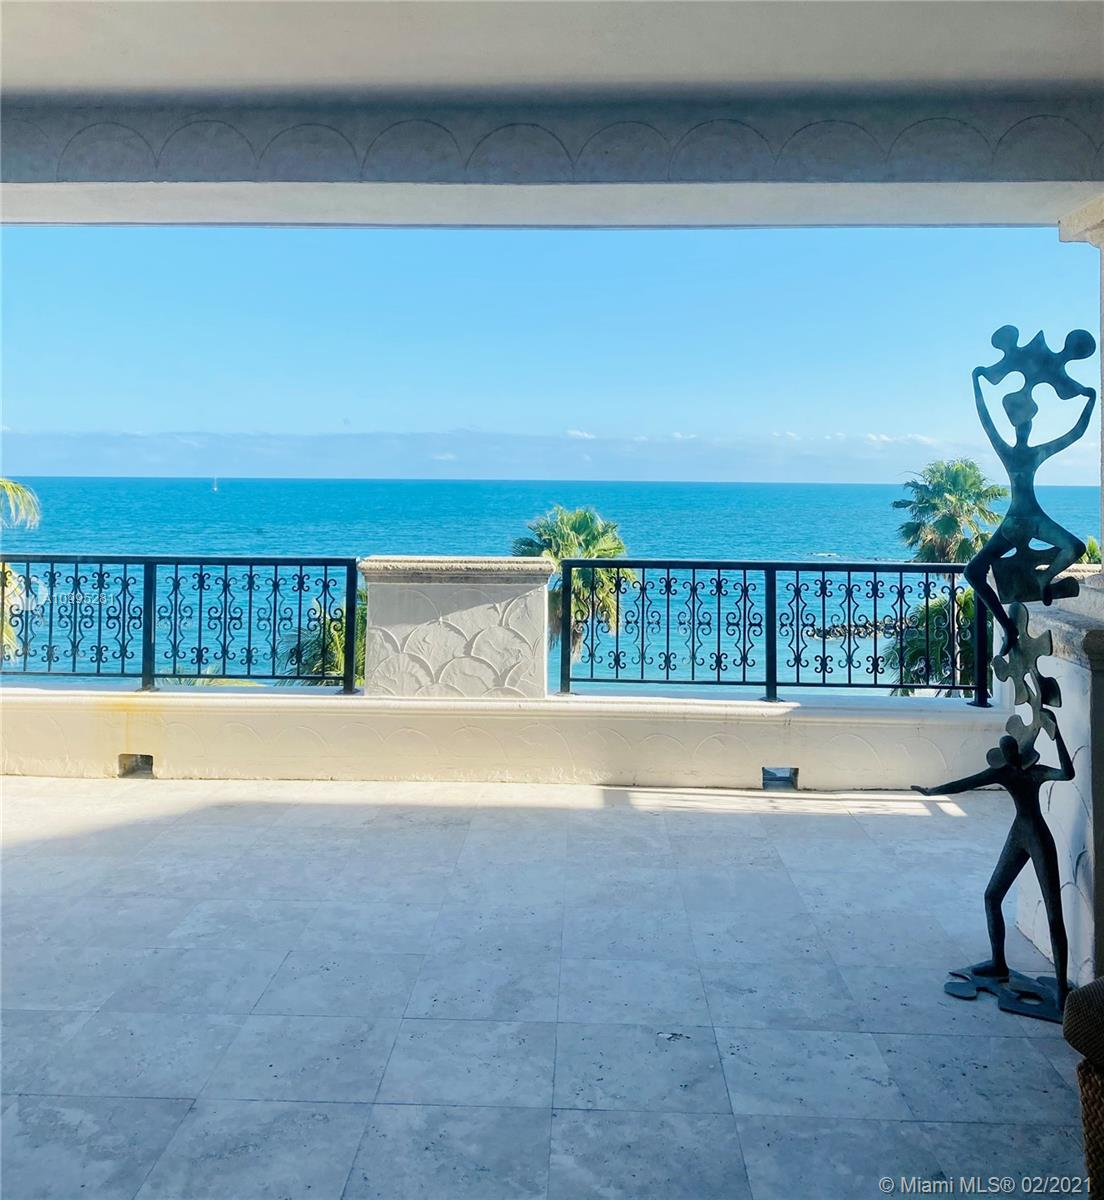 Oceanside Direct 2 bedroom/2.5 baths bright and airy. Private elevator entry to a private foyer. Extra wide larger size terrace overlooking the pool and another terrace with views of the Miami Skyline. Custom bar. Two storage units. No membership required. Early summer closing date required.